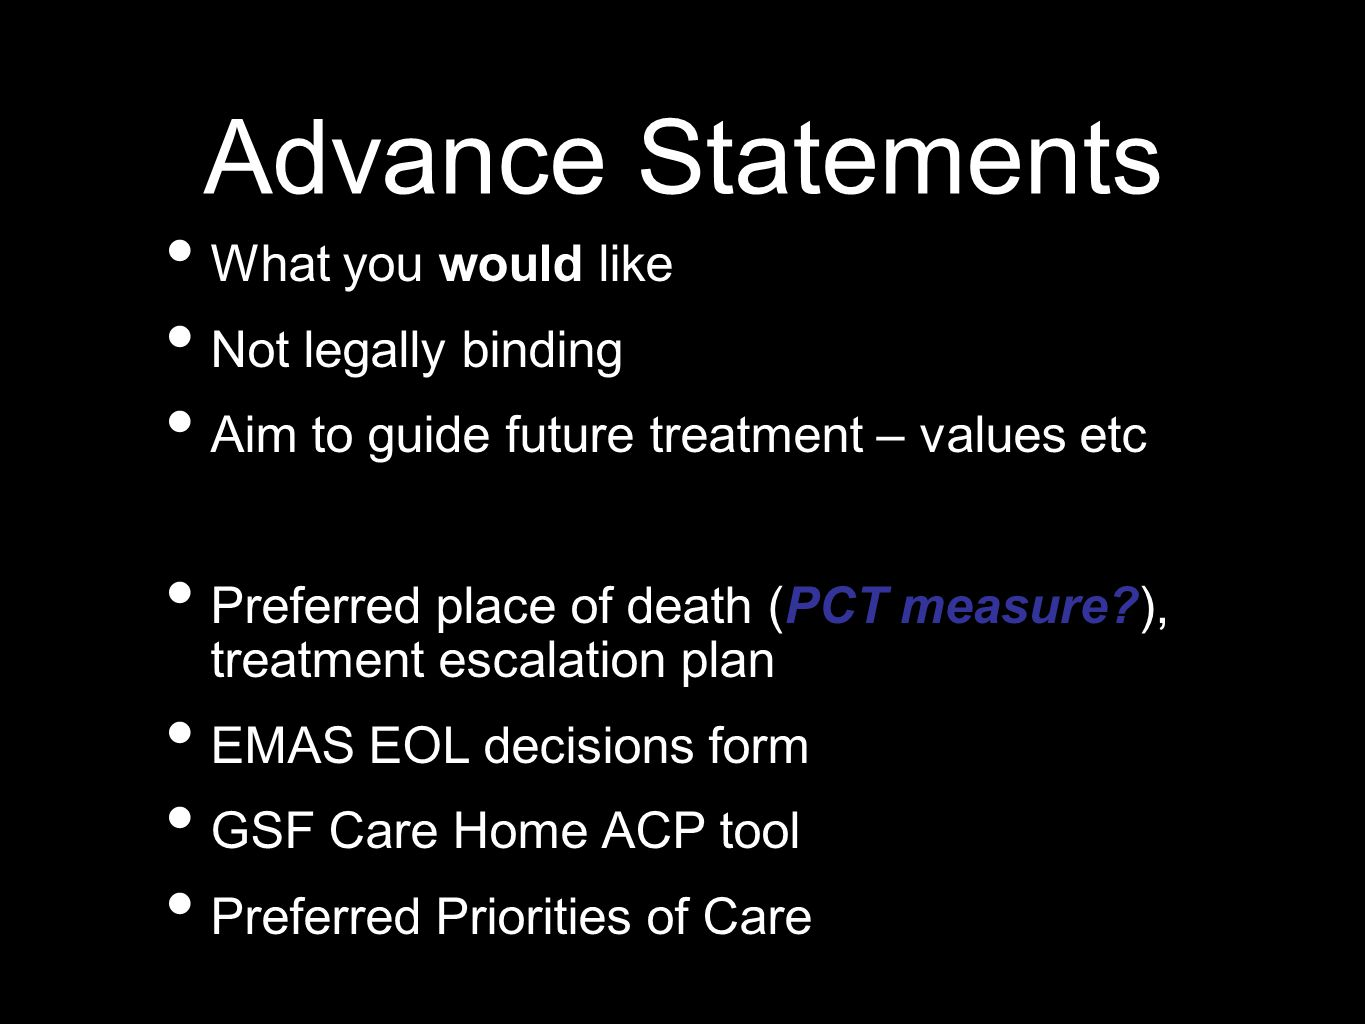 Advance Statements What you would like Not legally binding Aim to guide future treatment – values etc Preferred place of death (PCT measure?), treatment escalation plan EMAS EOL decisions form GSF Care Home ACP tool Preferred Priorities of Care